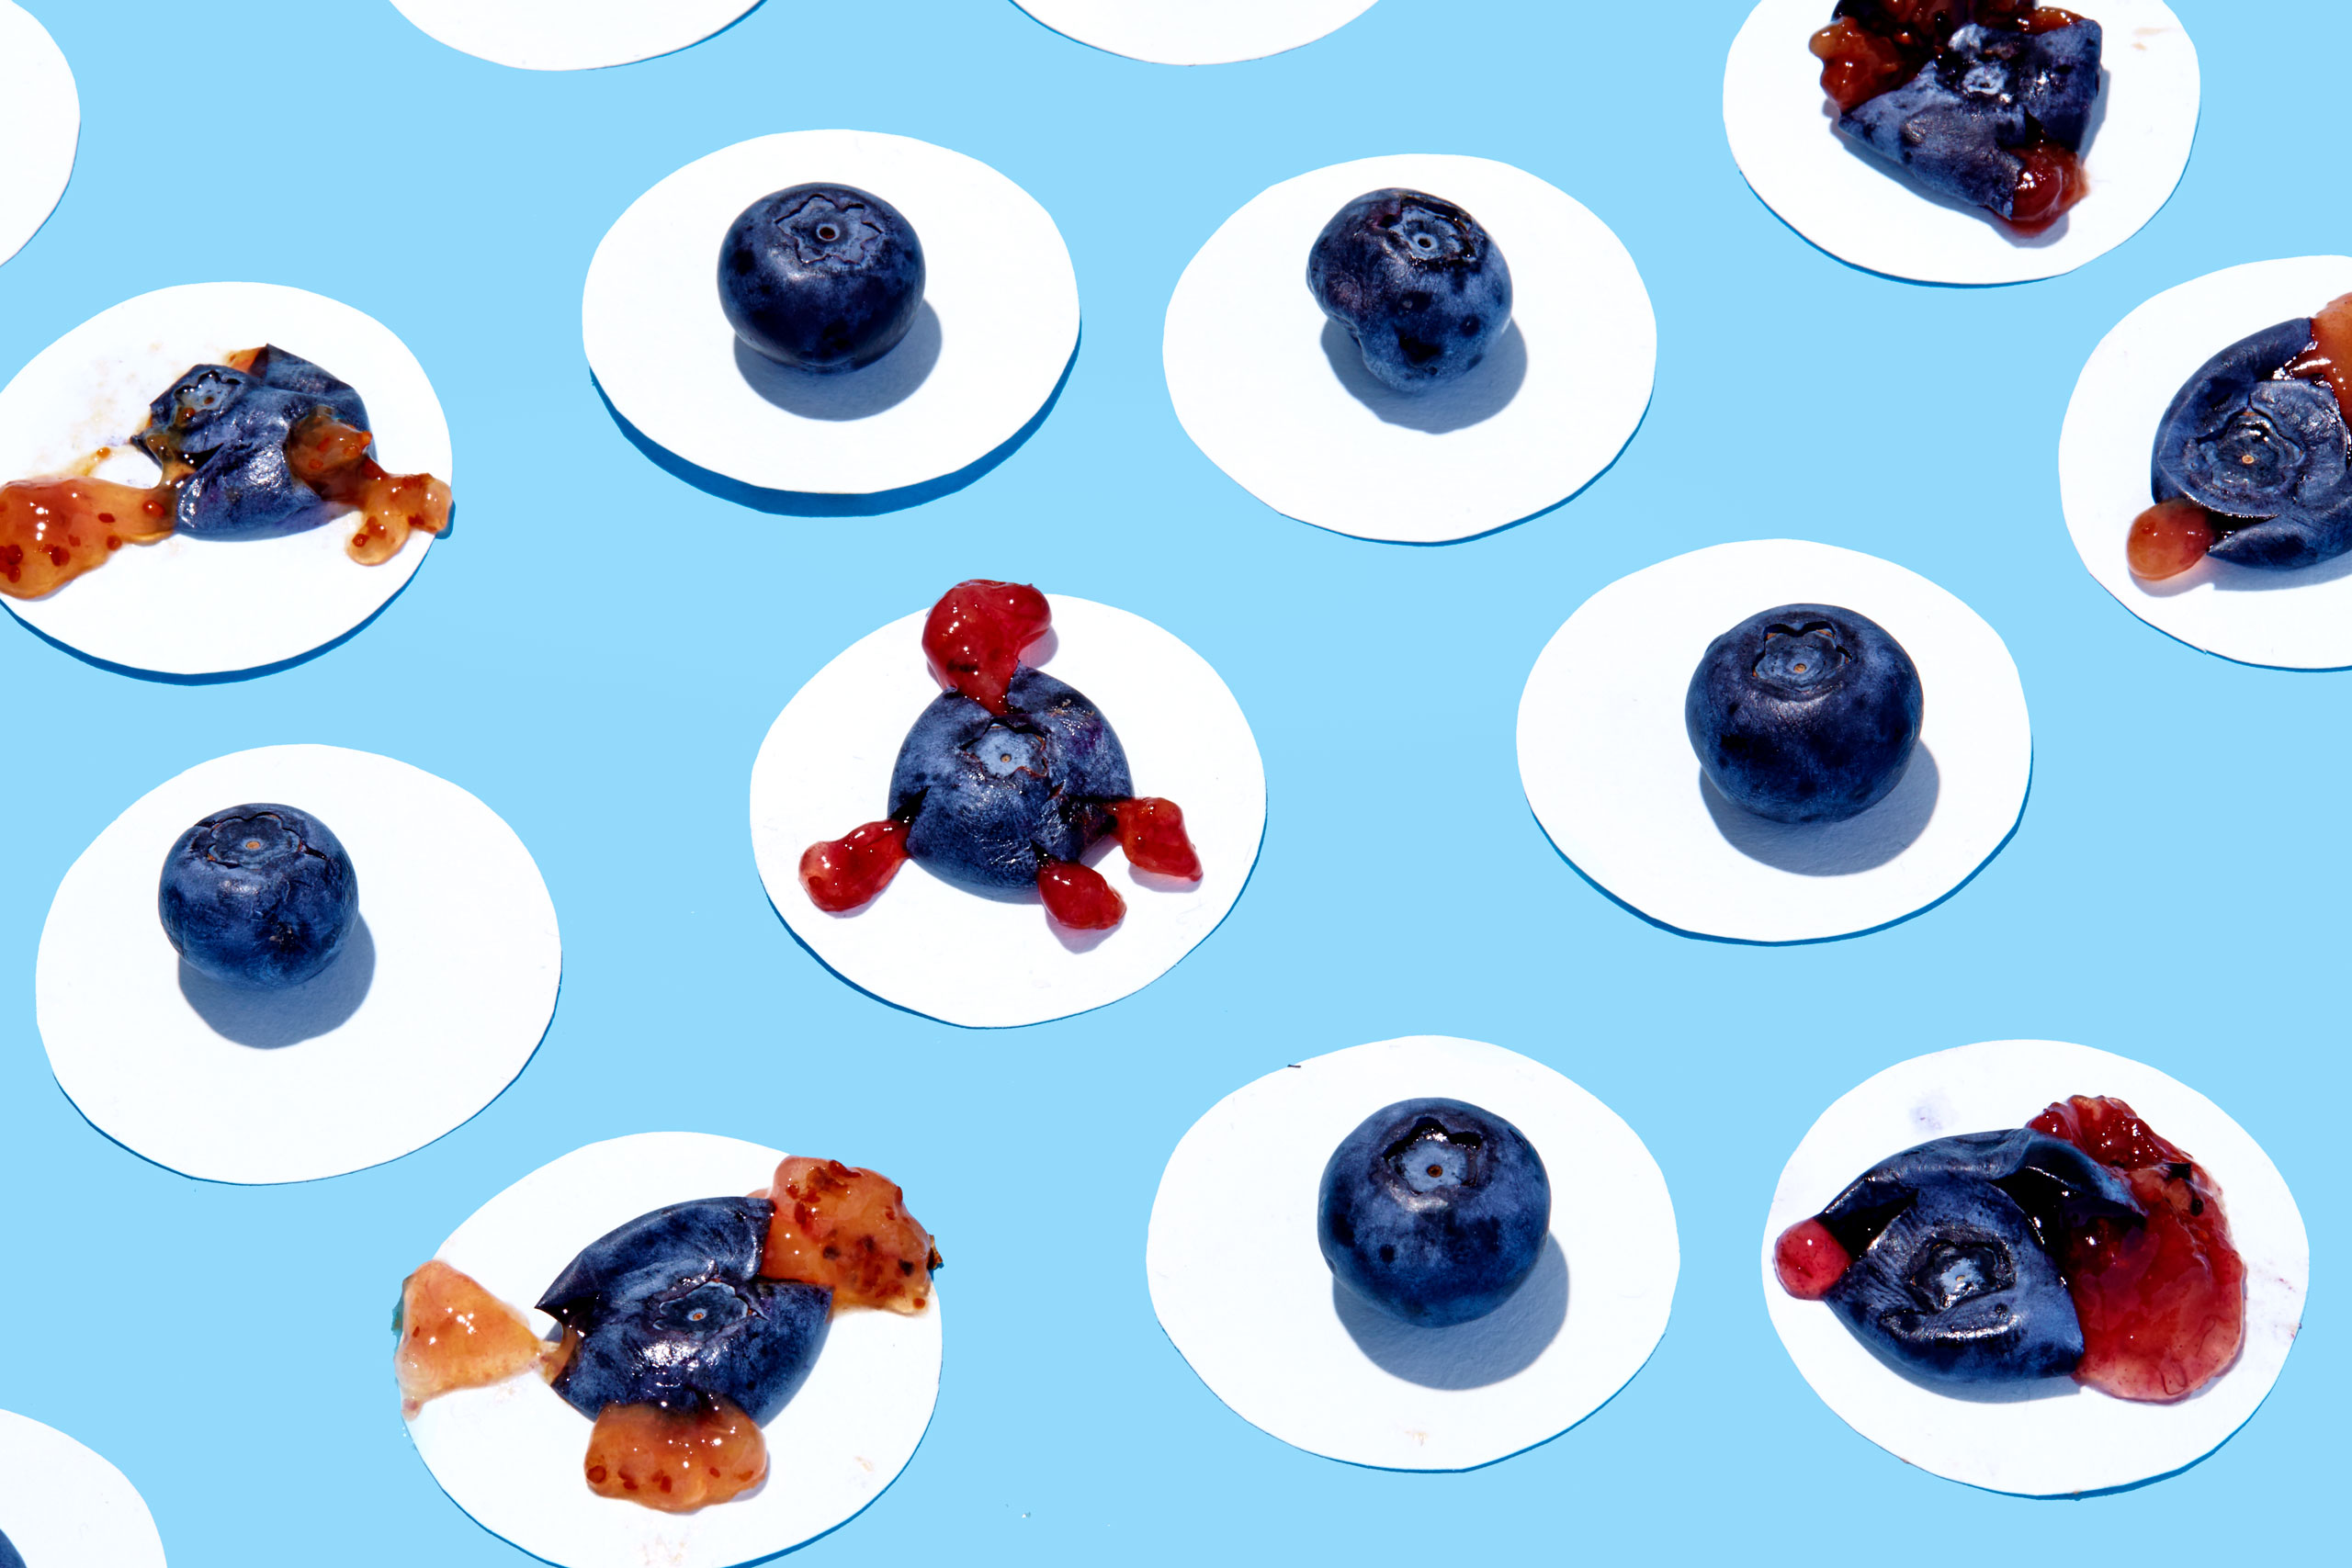 healthiest foods, health food, diet, nutrition, time.com stock, blueberries, blueberry, fruits